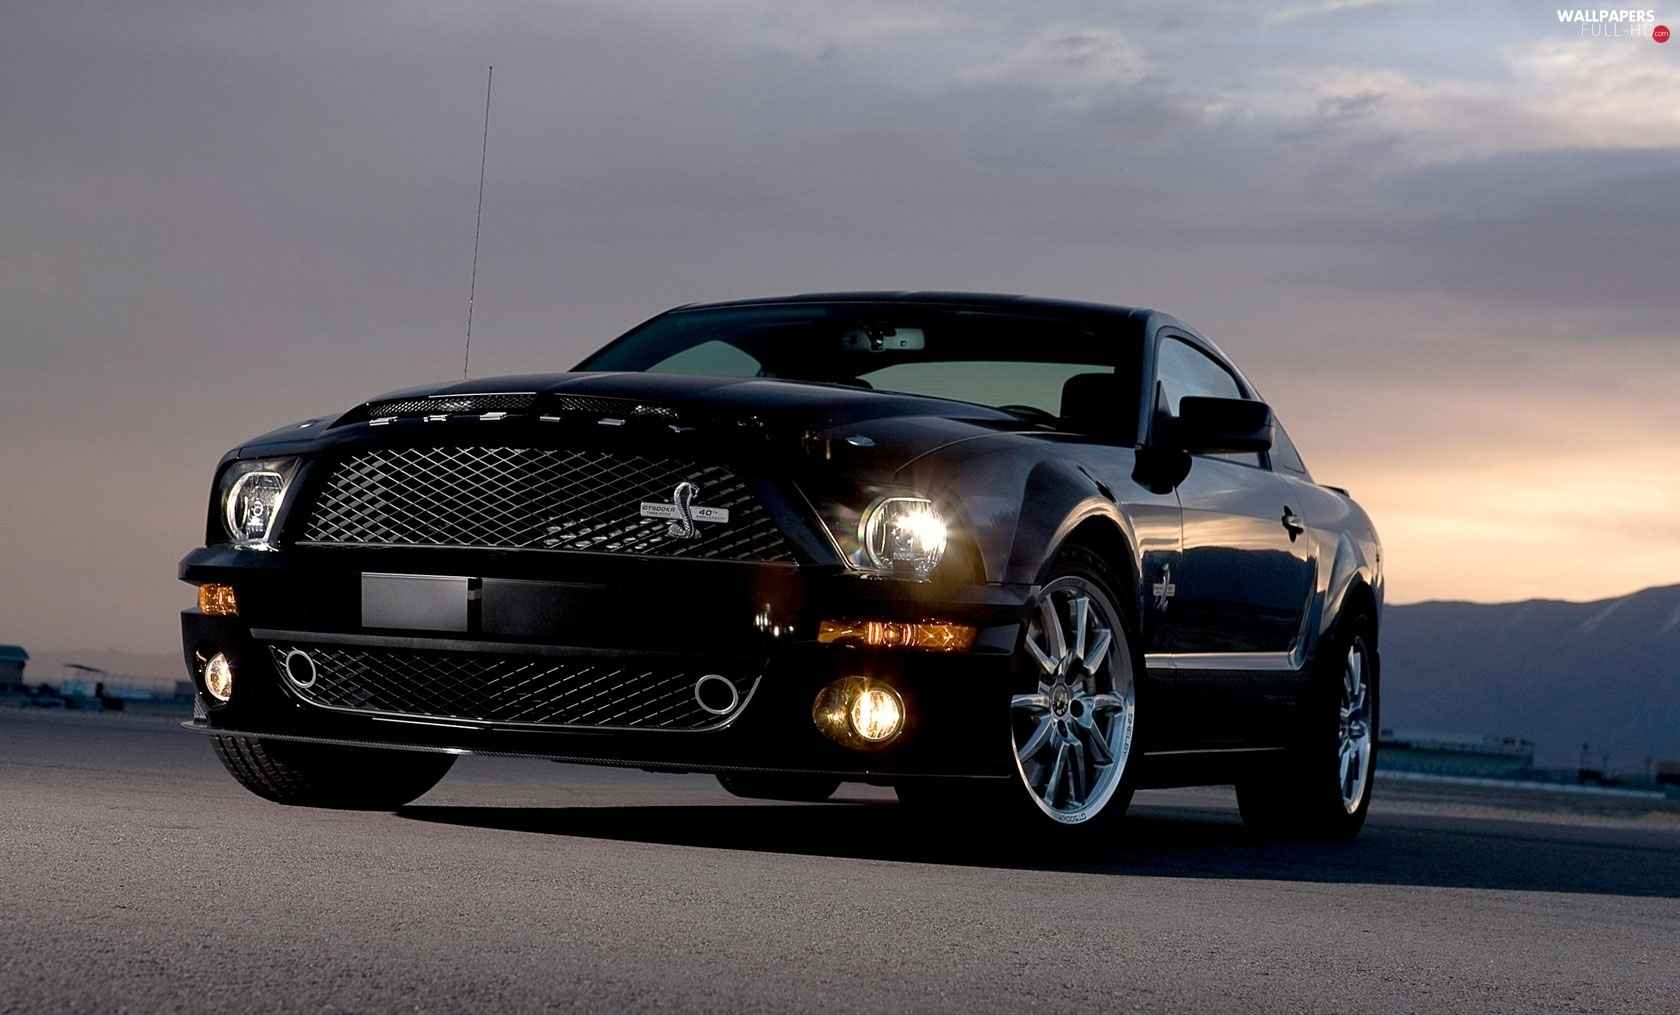 Ford Shelby GT 500 KR, Black